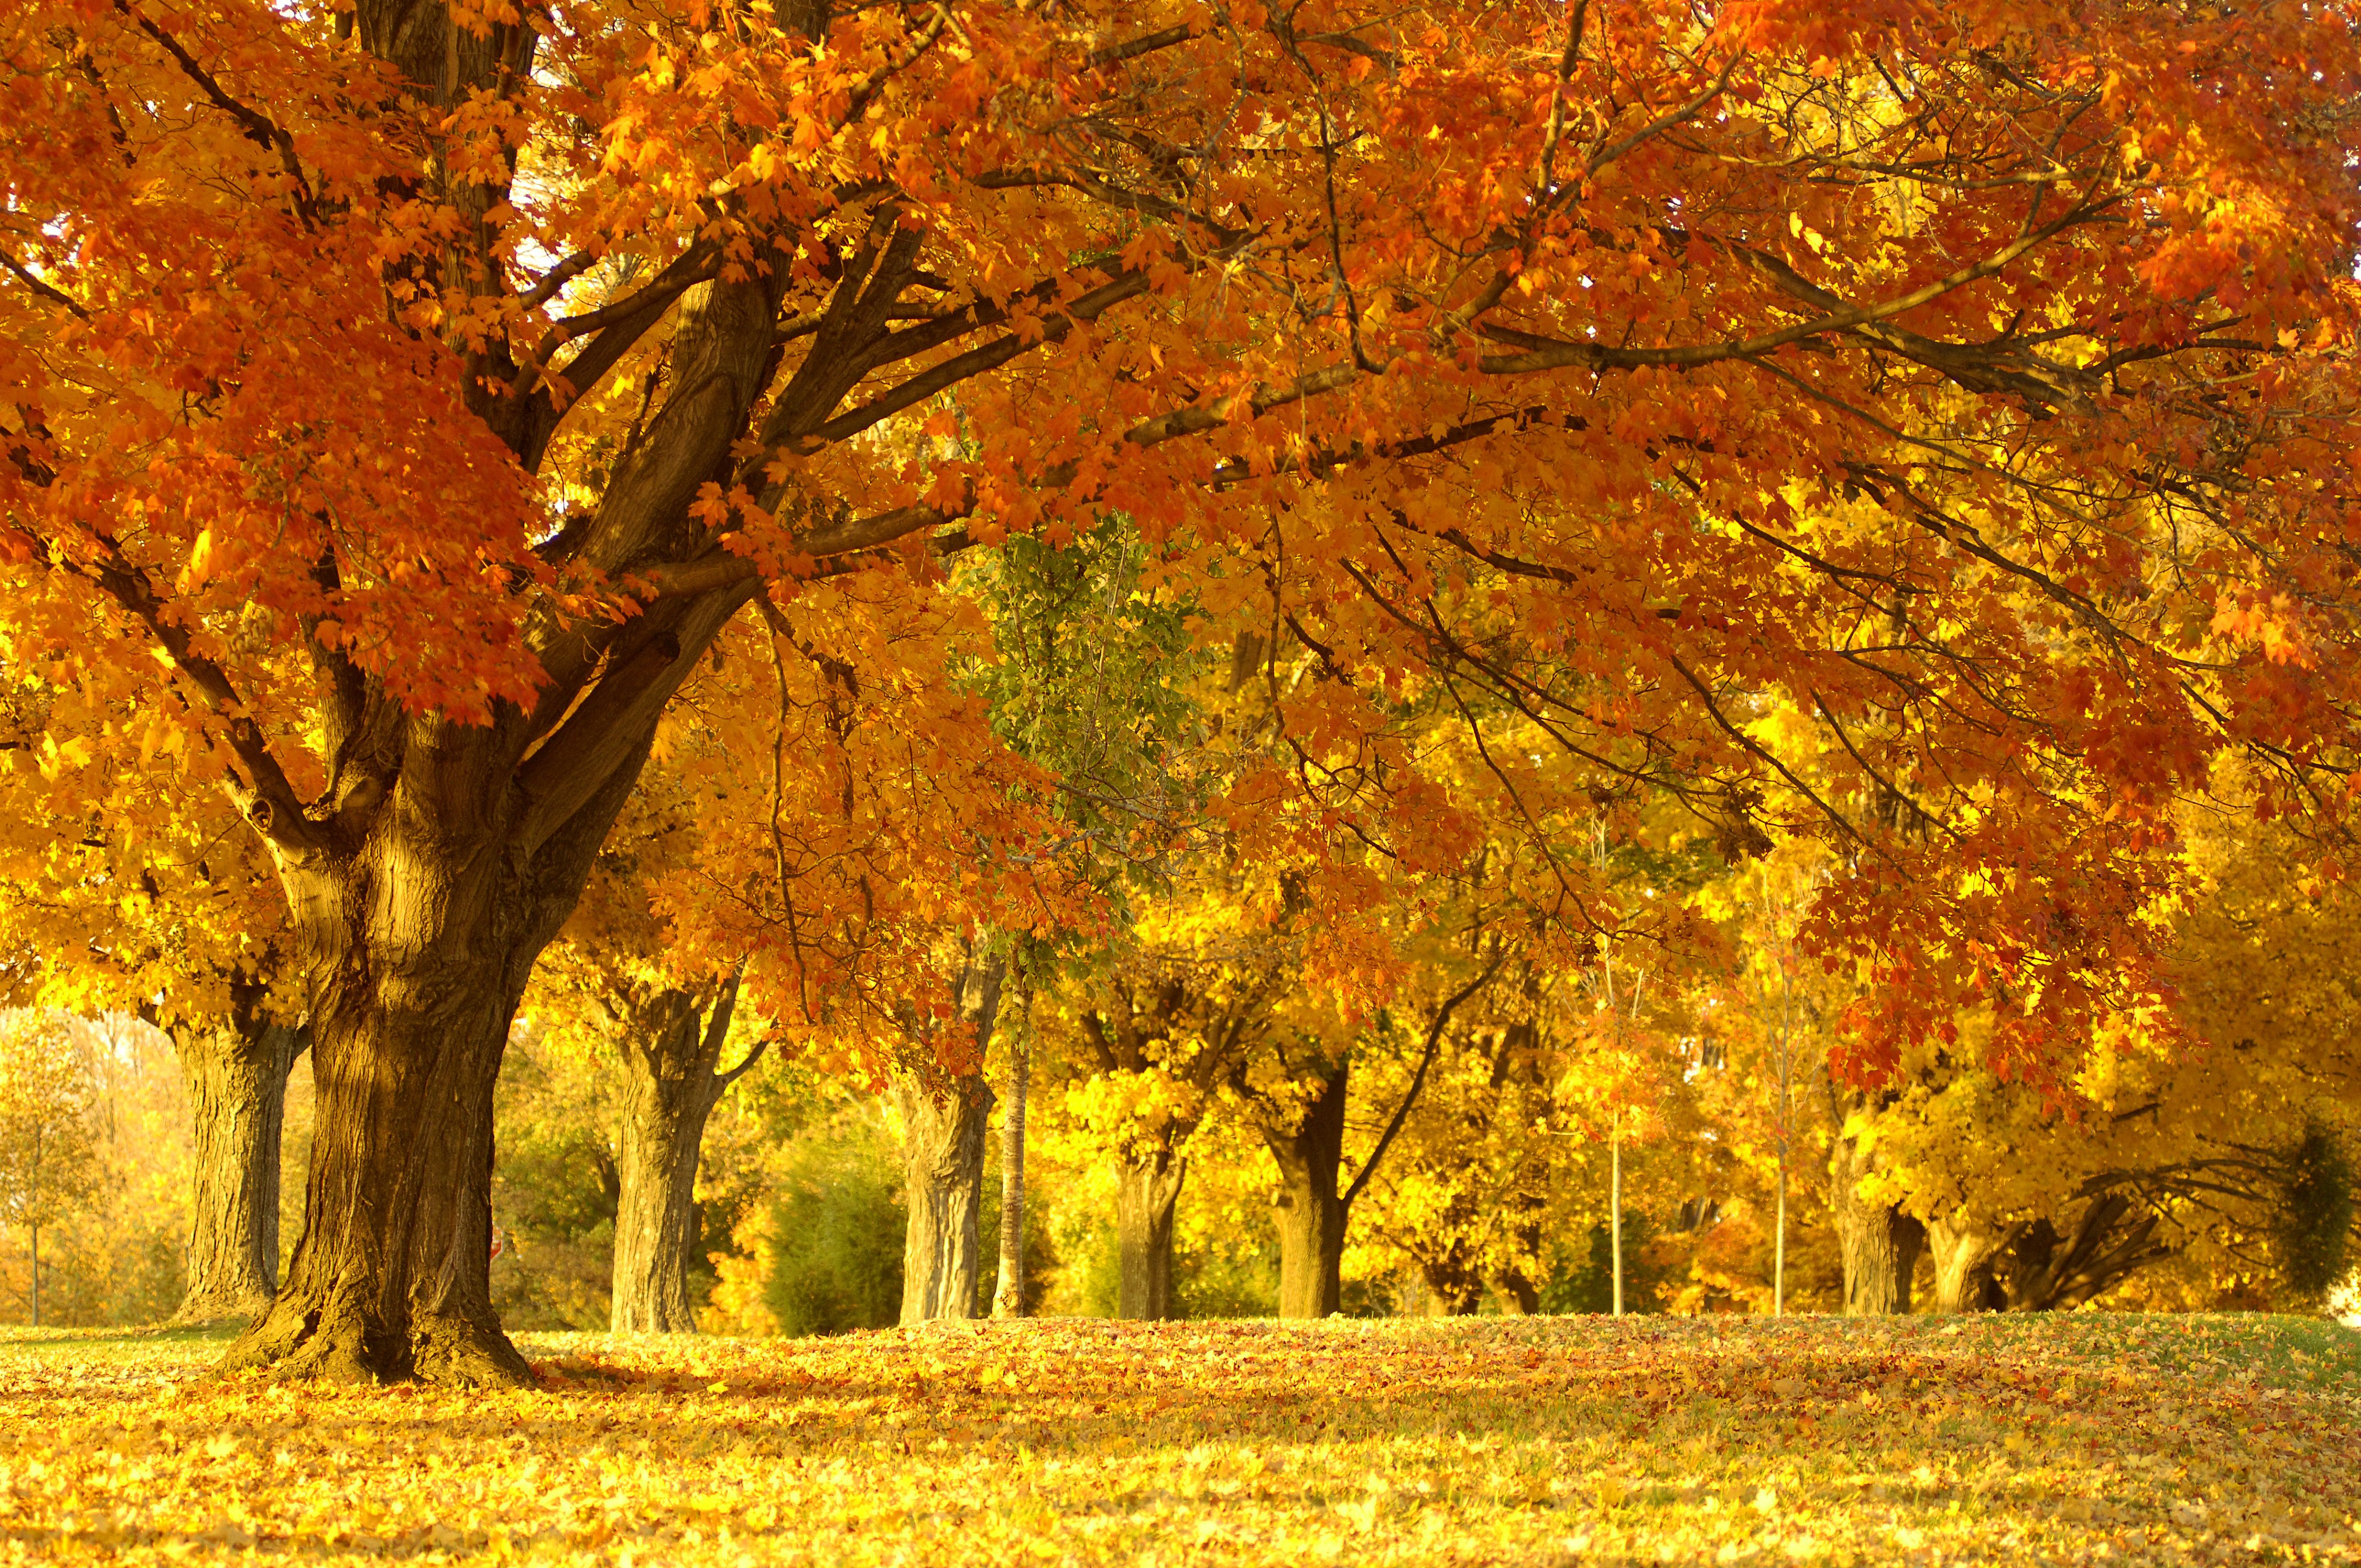 Give Your Desktop a Taste of the Fall Season with These